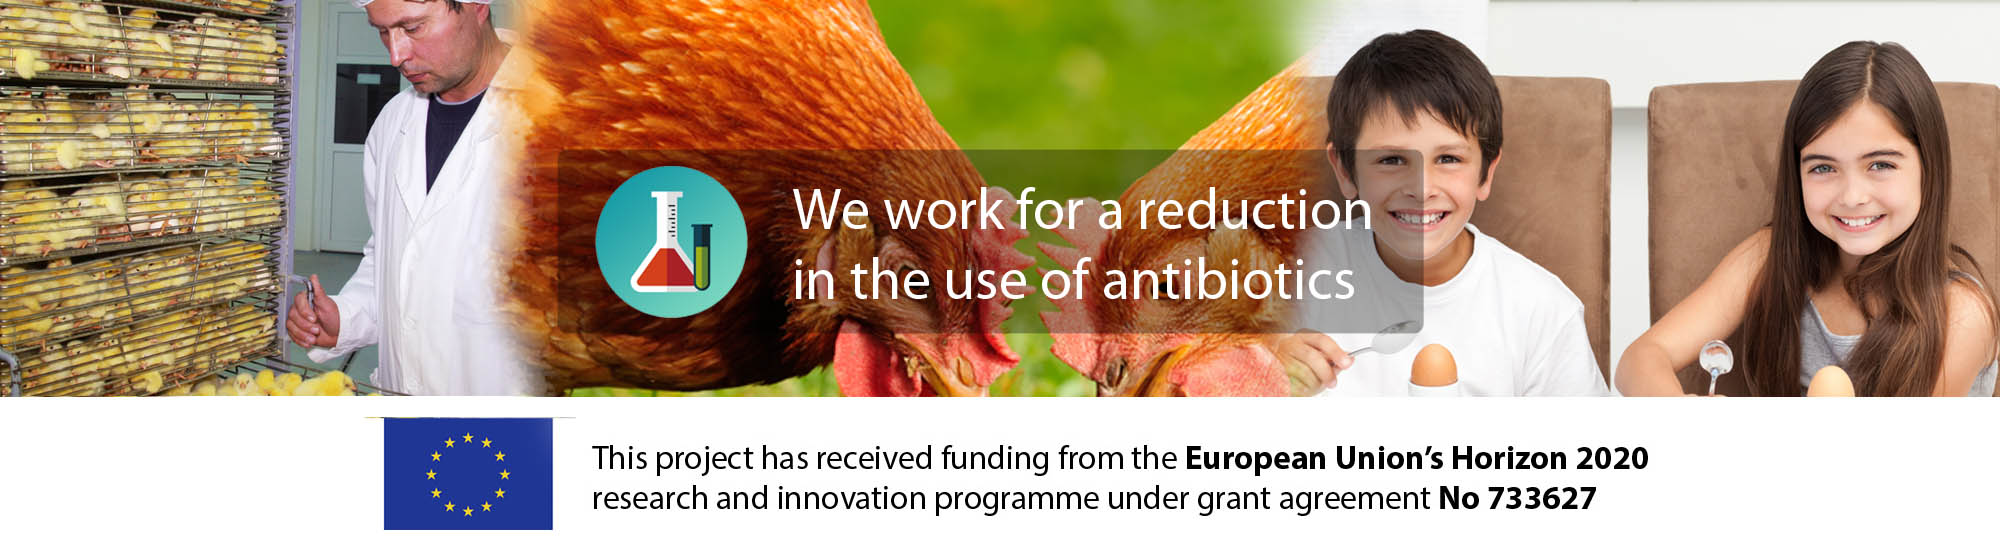 We work for a reduction in the use of antibiotics